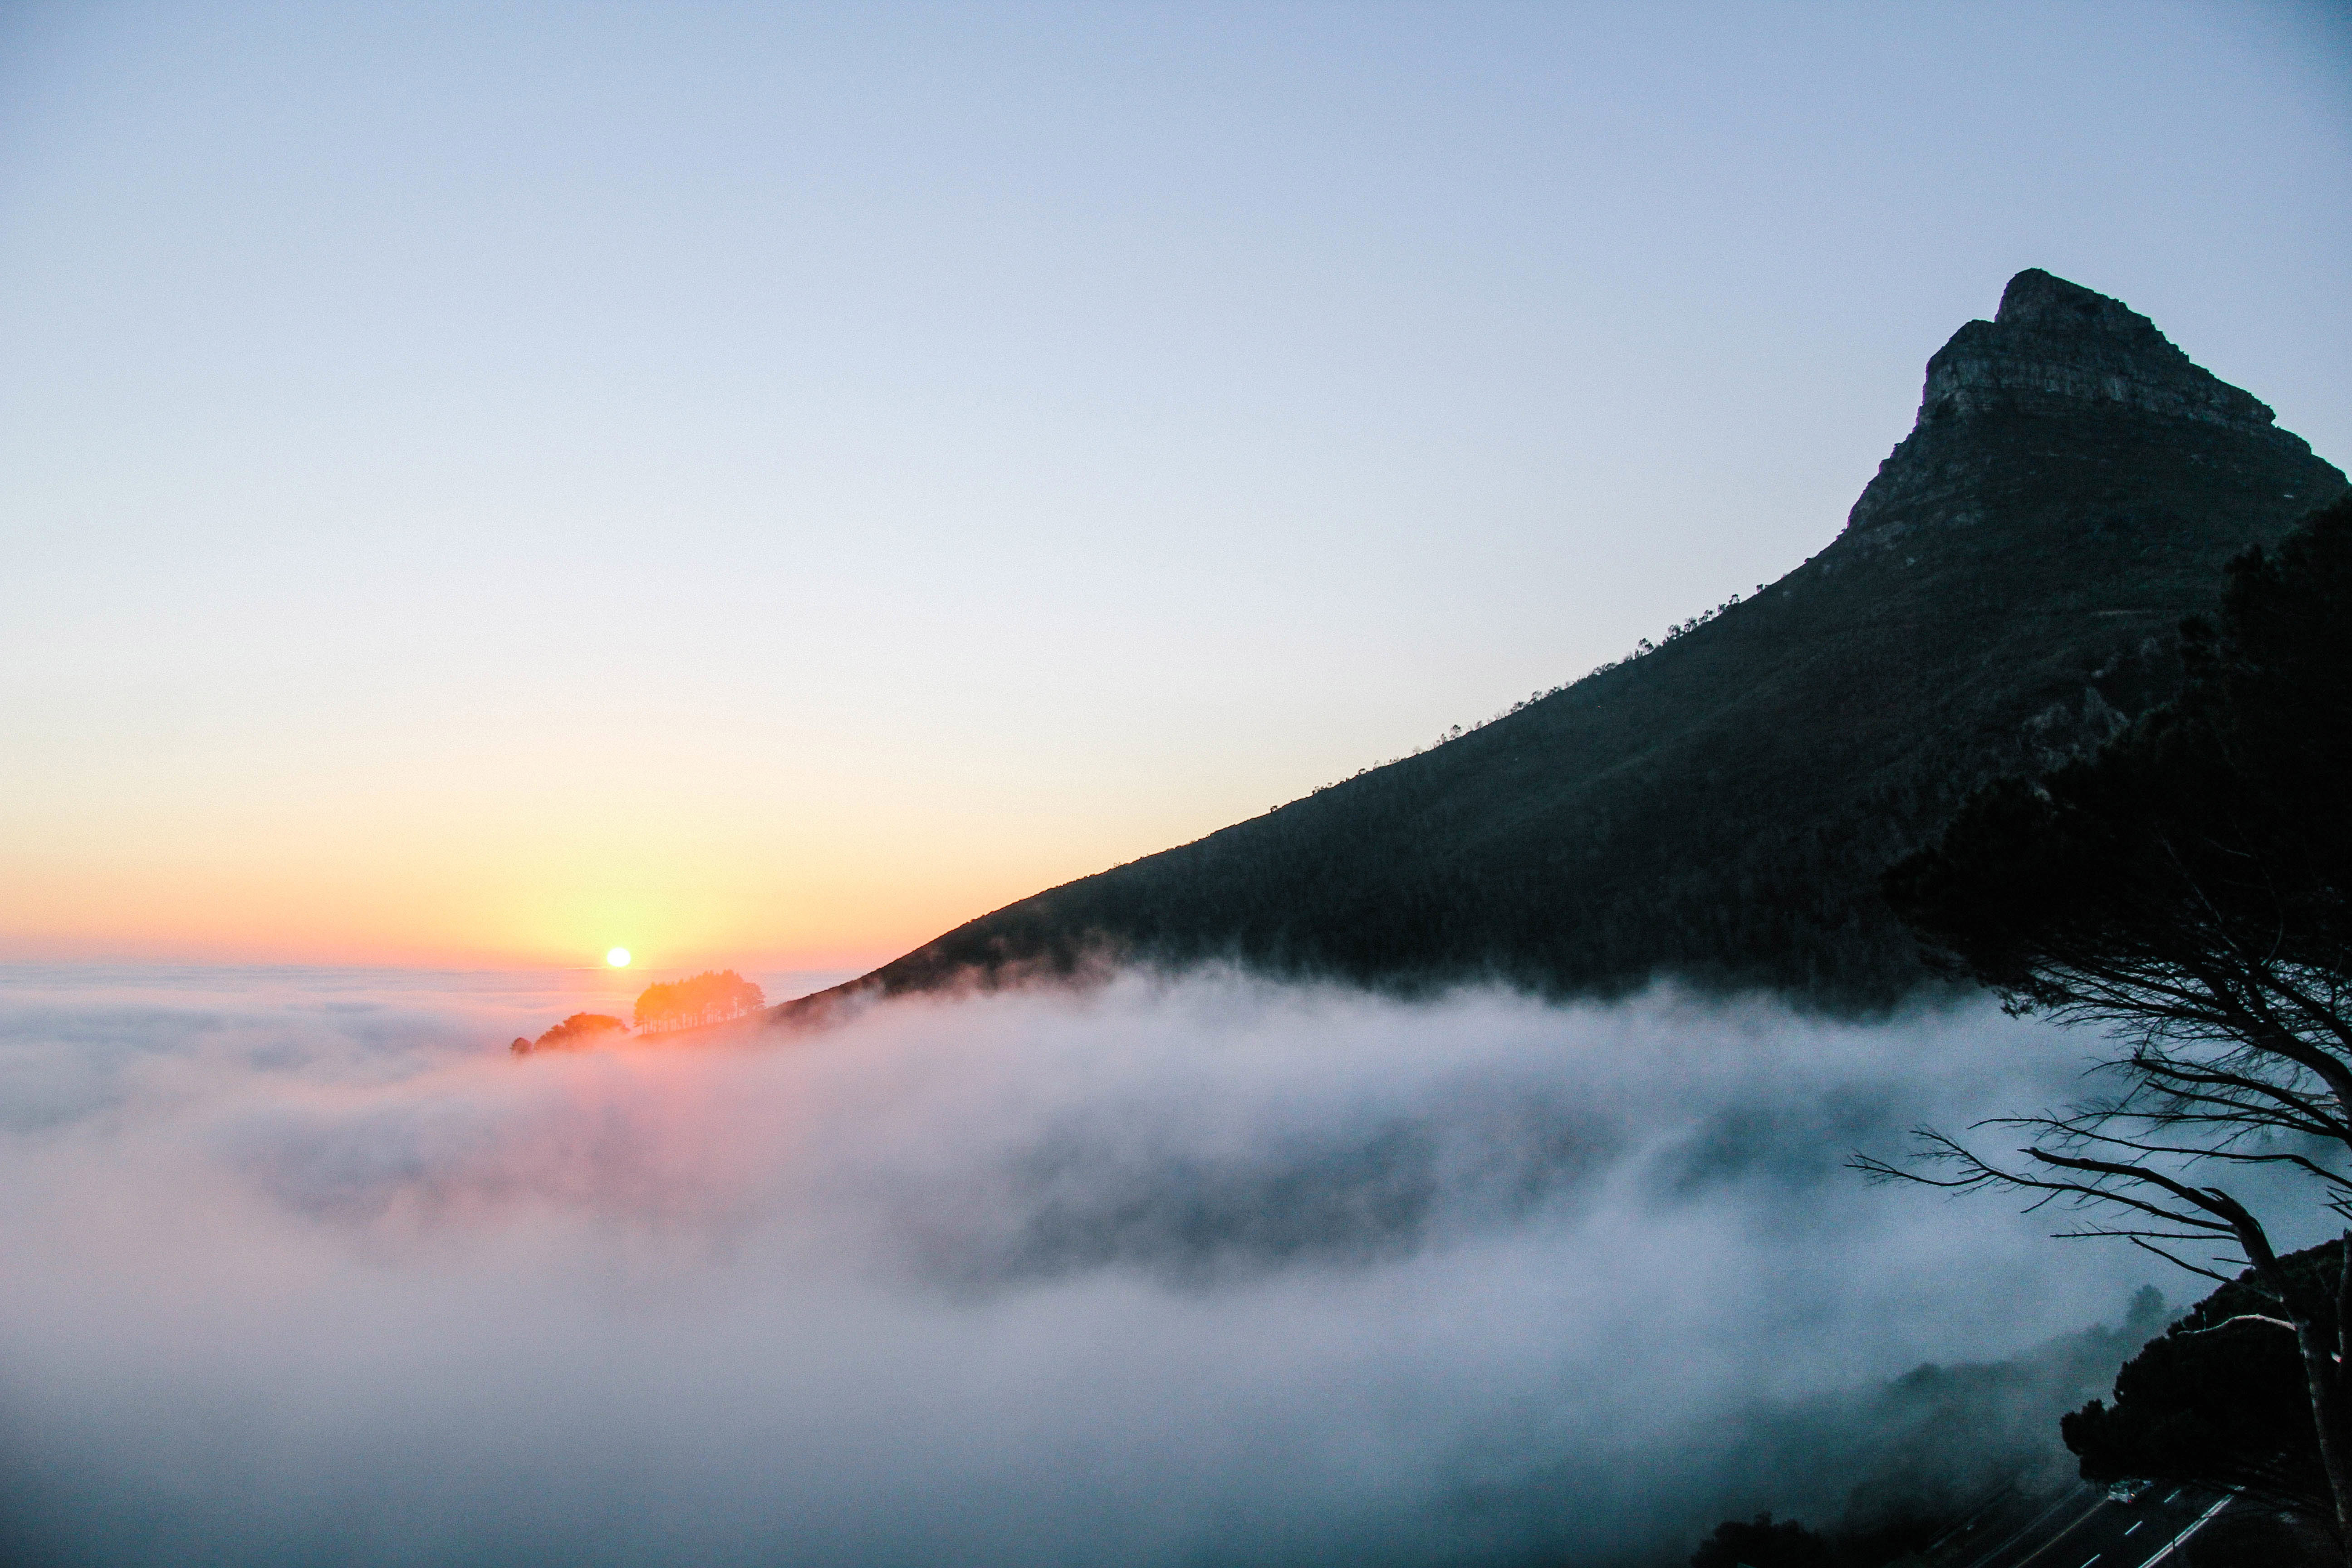 Sunrise Above The Clouds On The Mountain In Cape Town